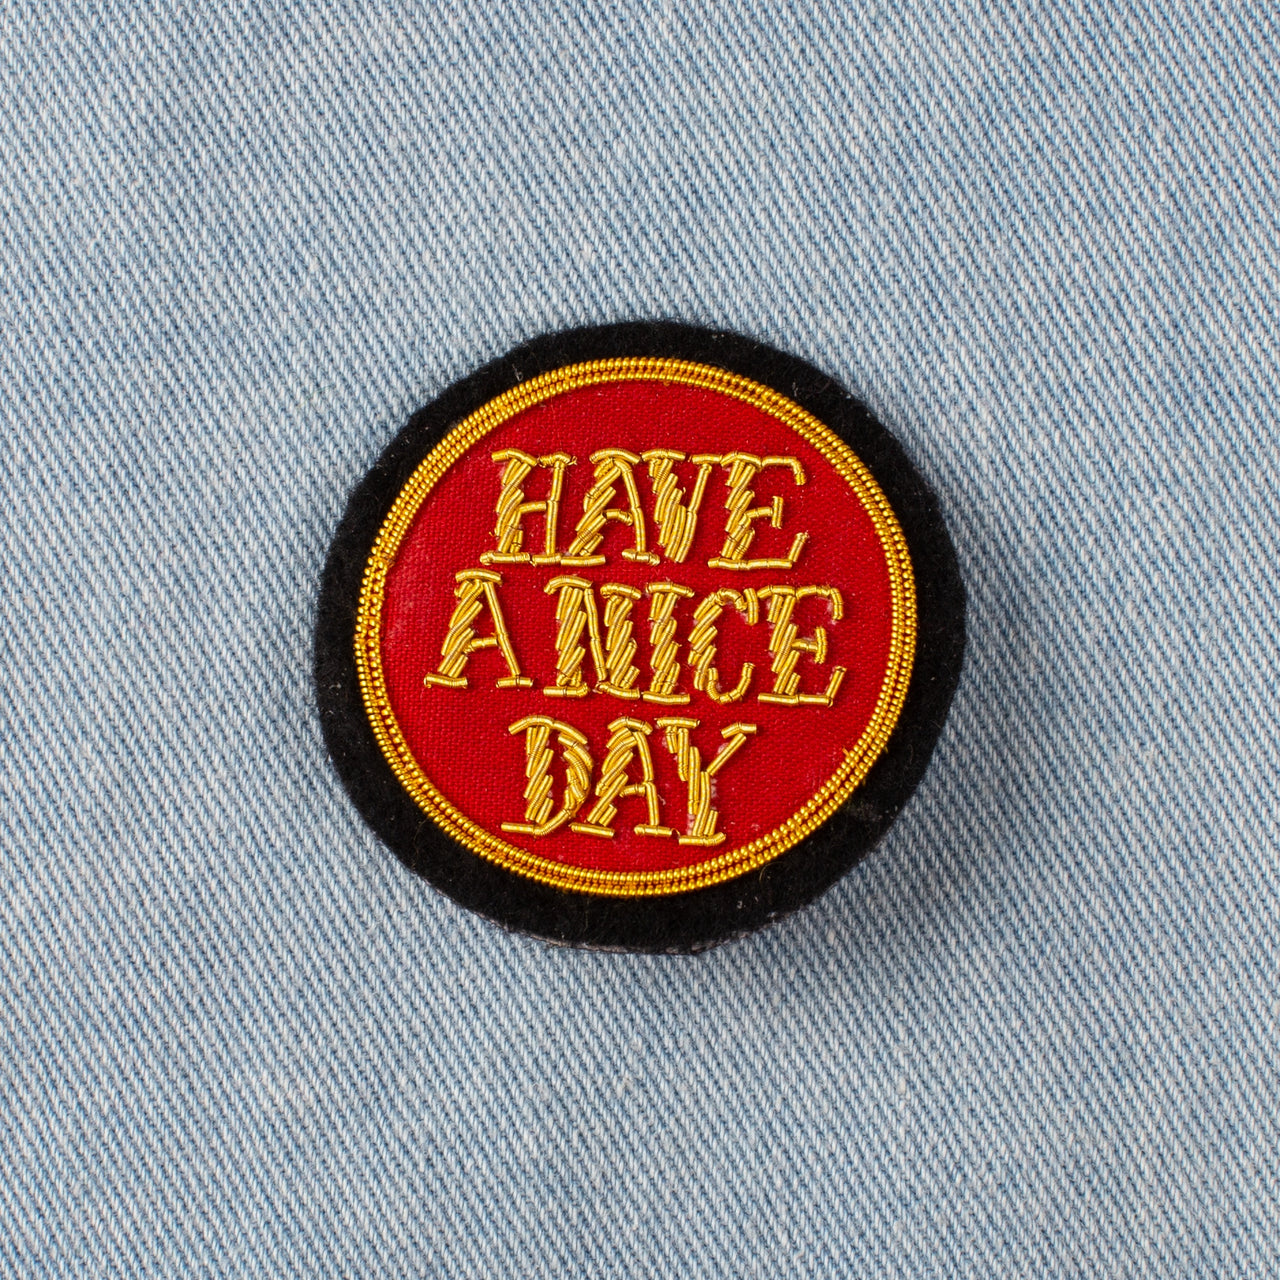 Embroidered Pin - Have a Nice Day